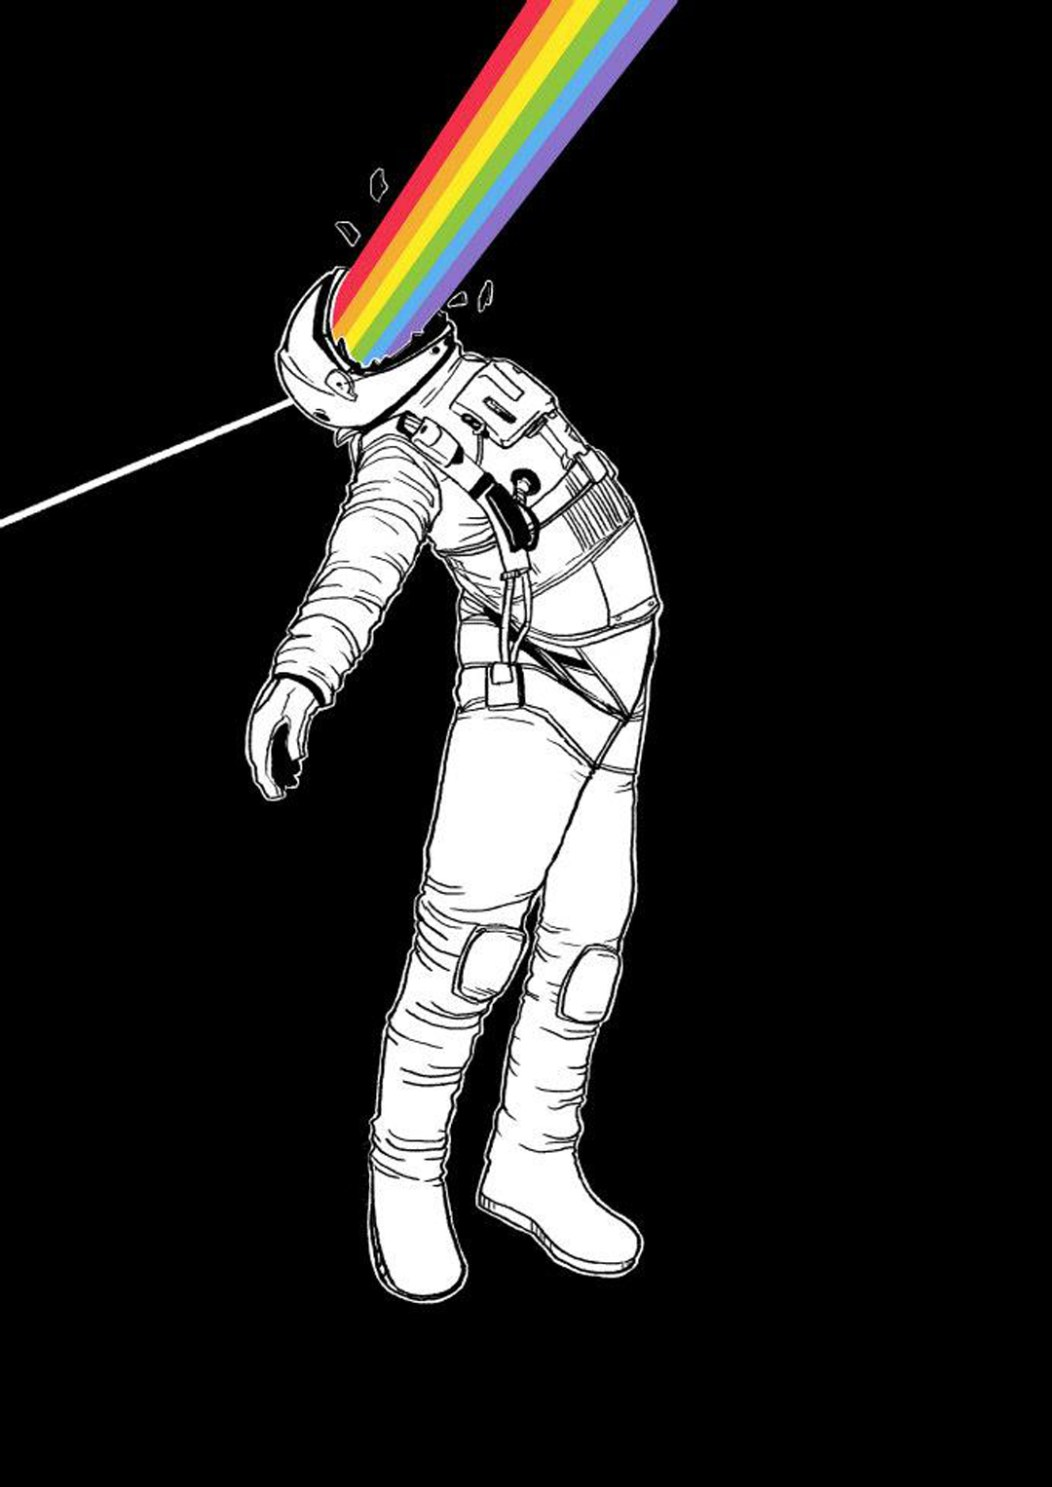 2D Black and White Astronaut Illustration